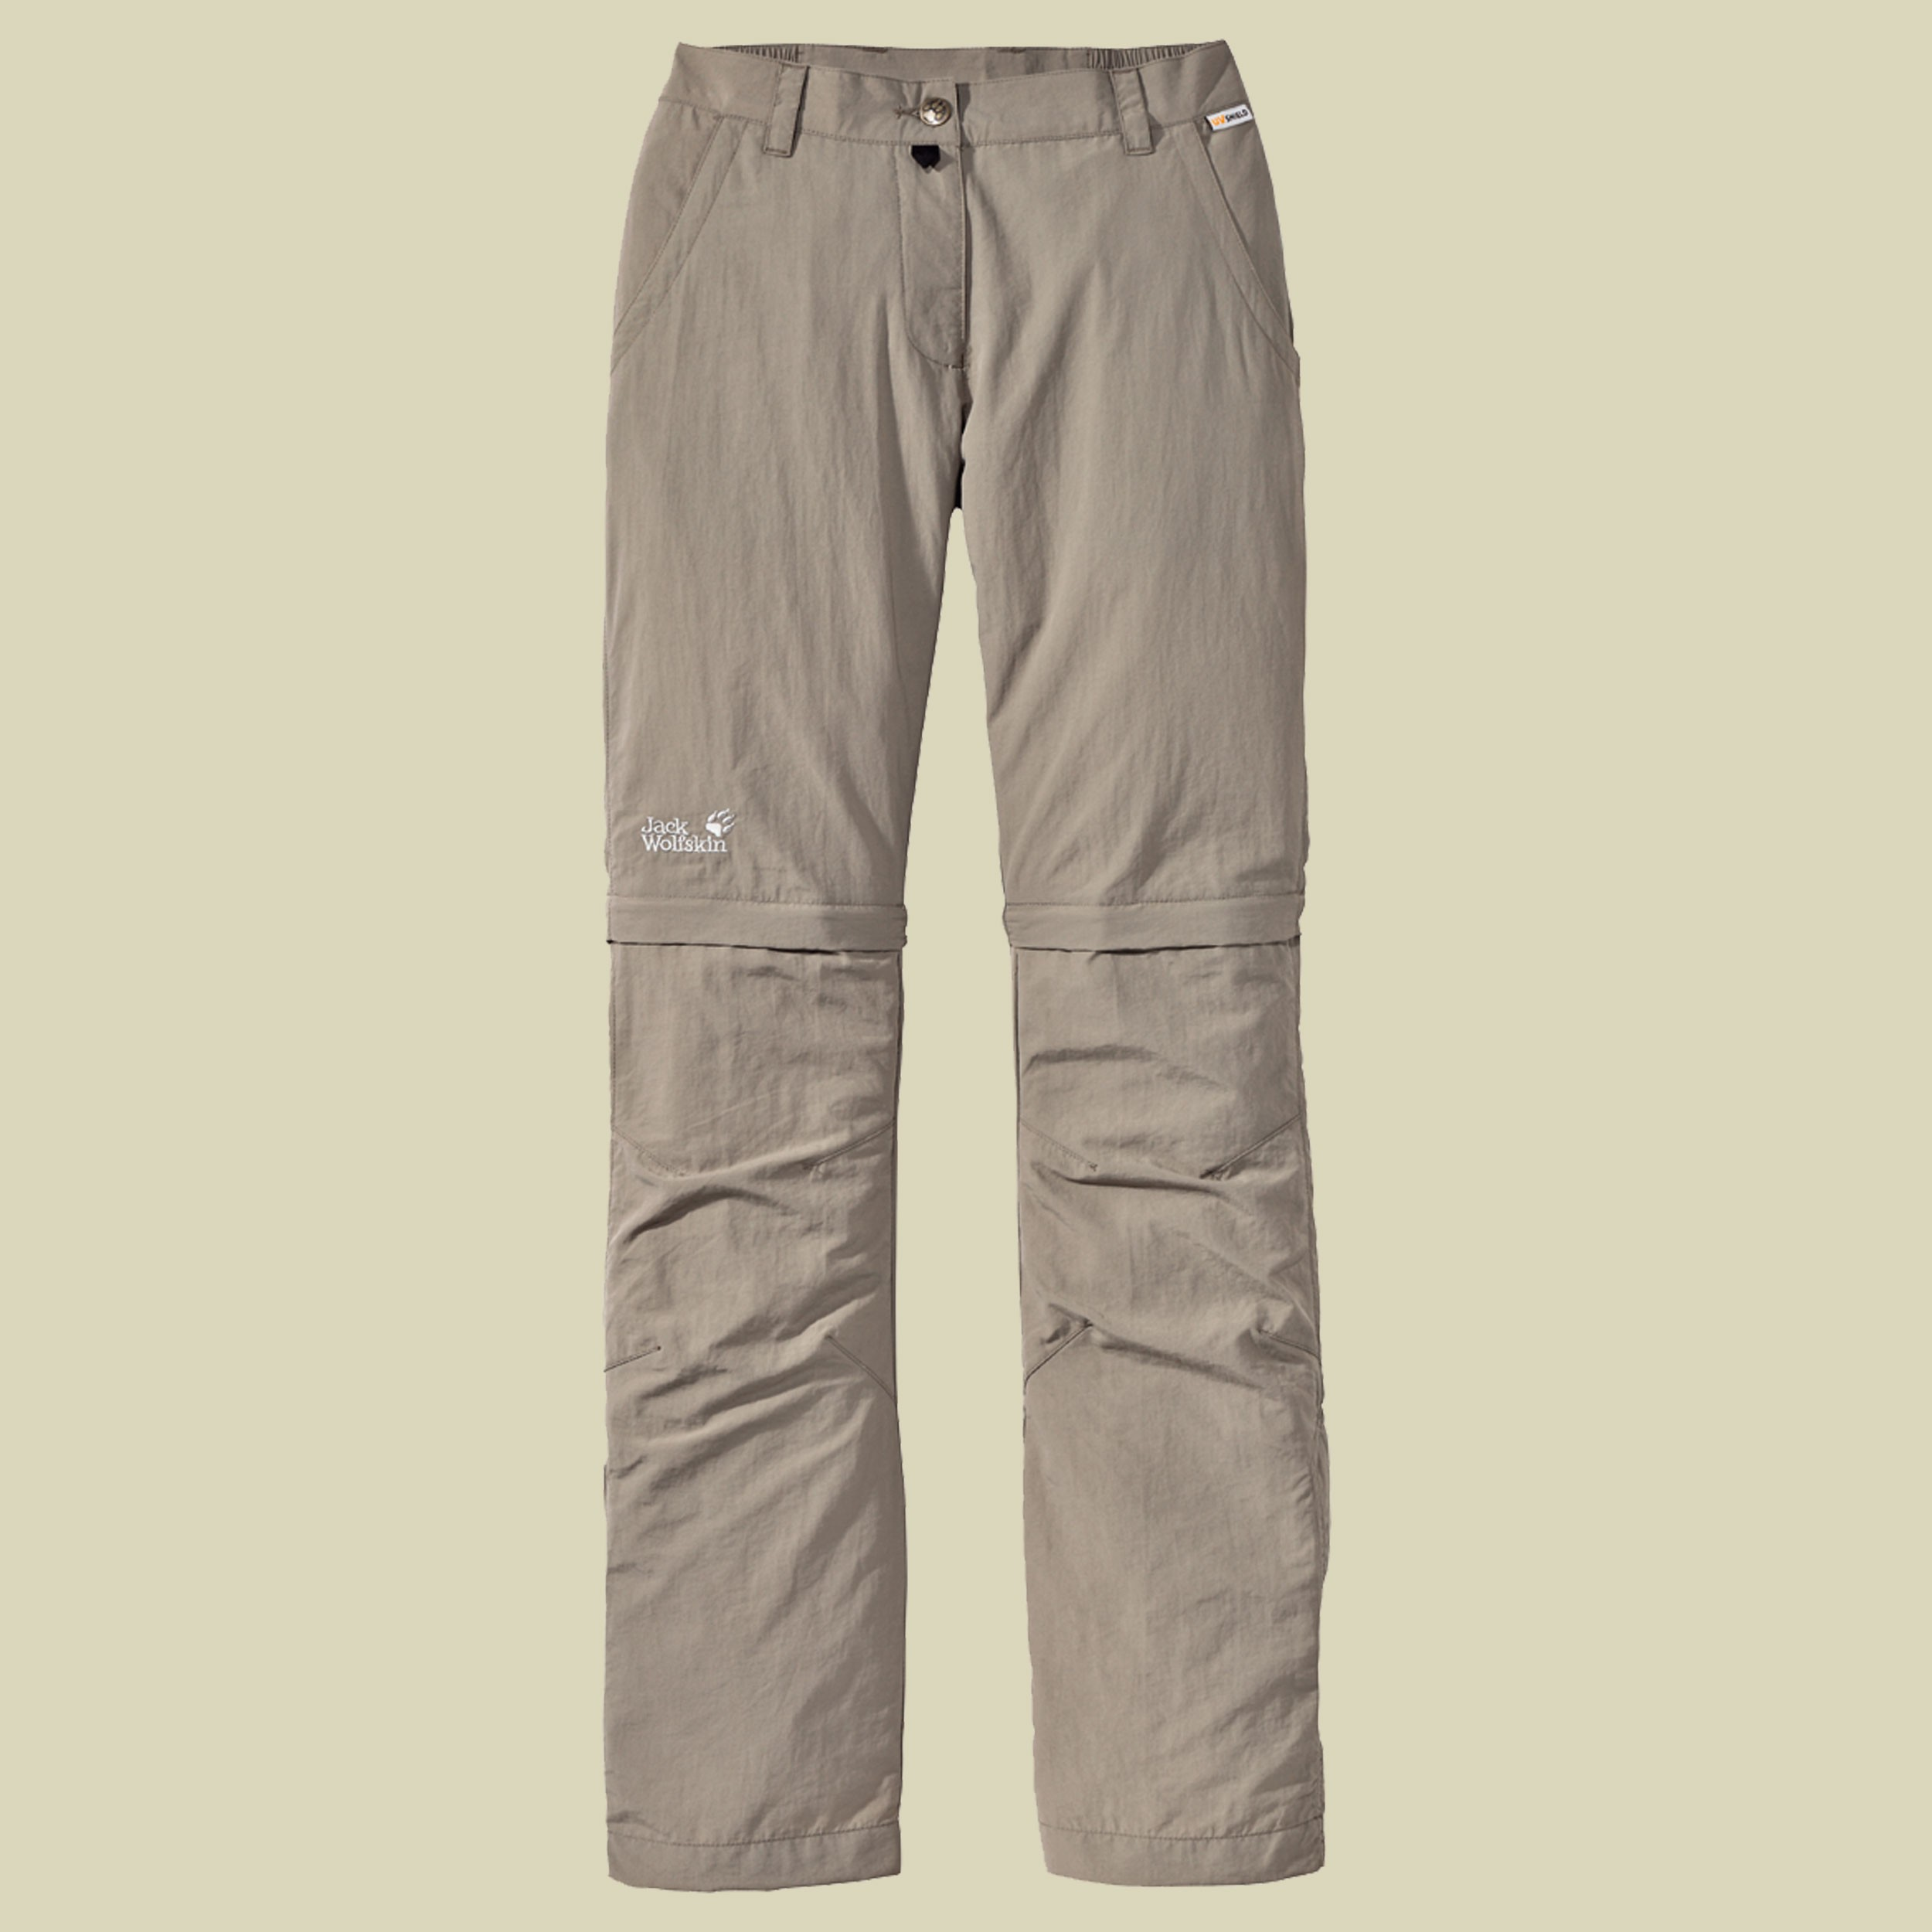 Canyon Zip Off Pants Women